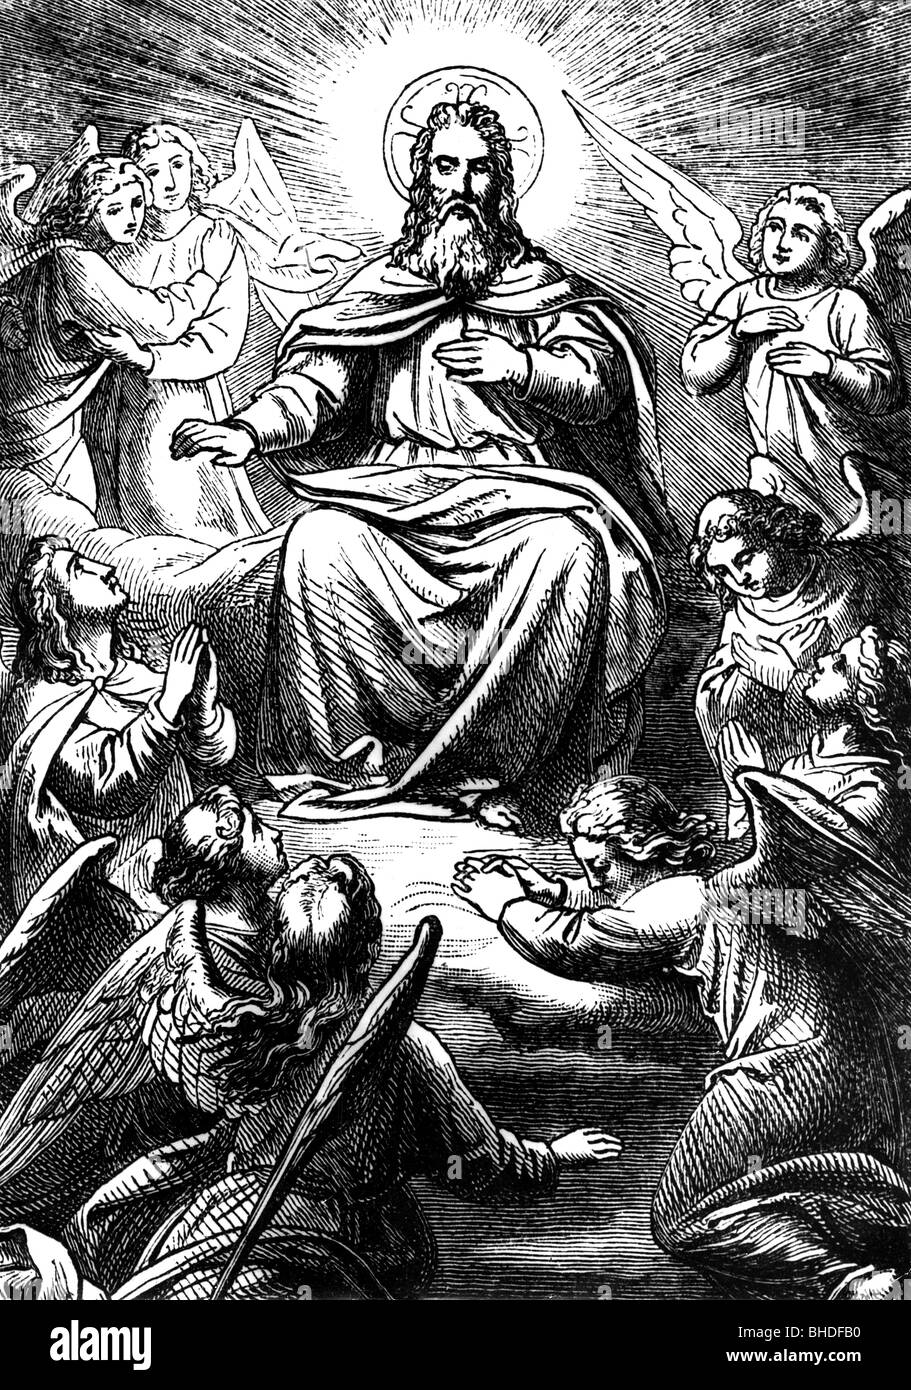 religion, god, illustration of God the Father, surrounded by ...